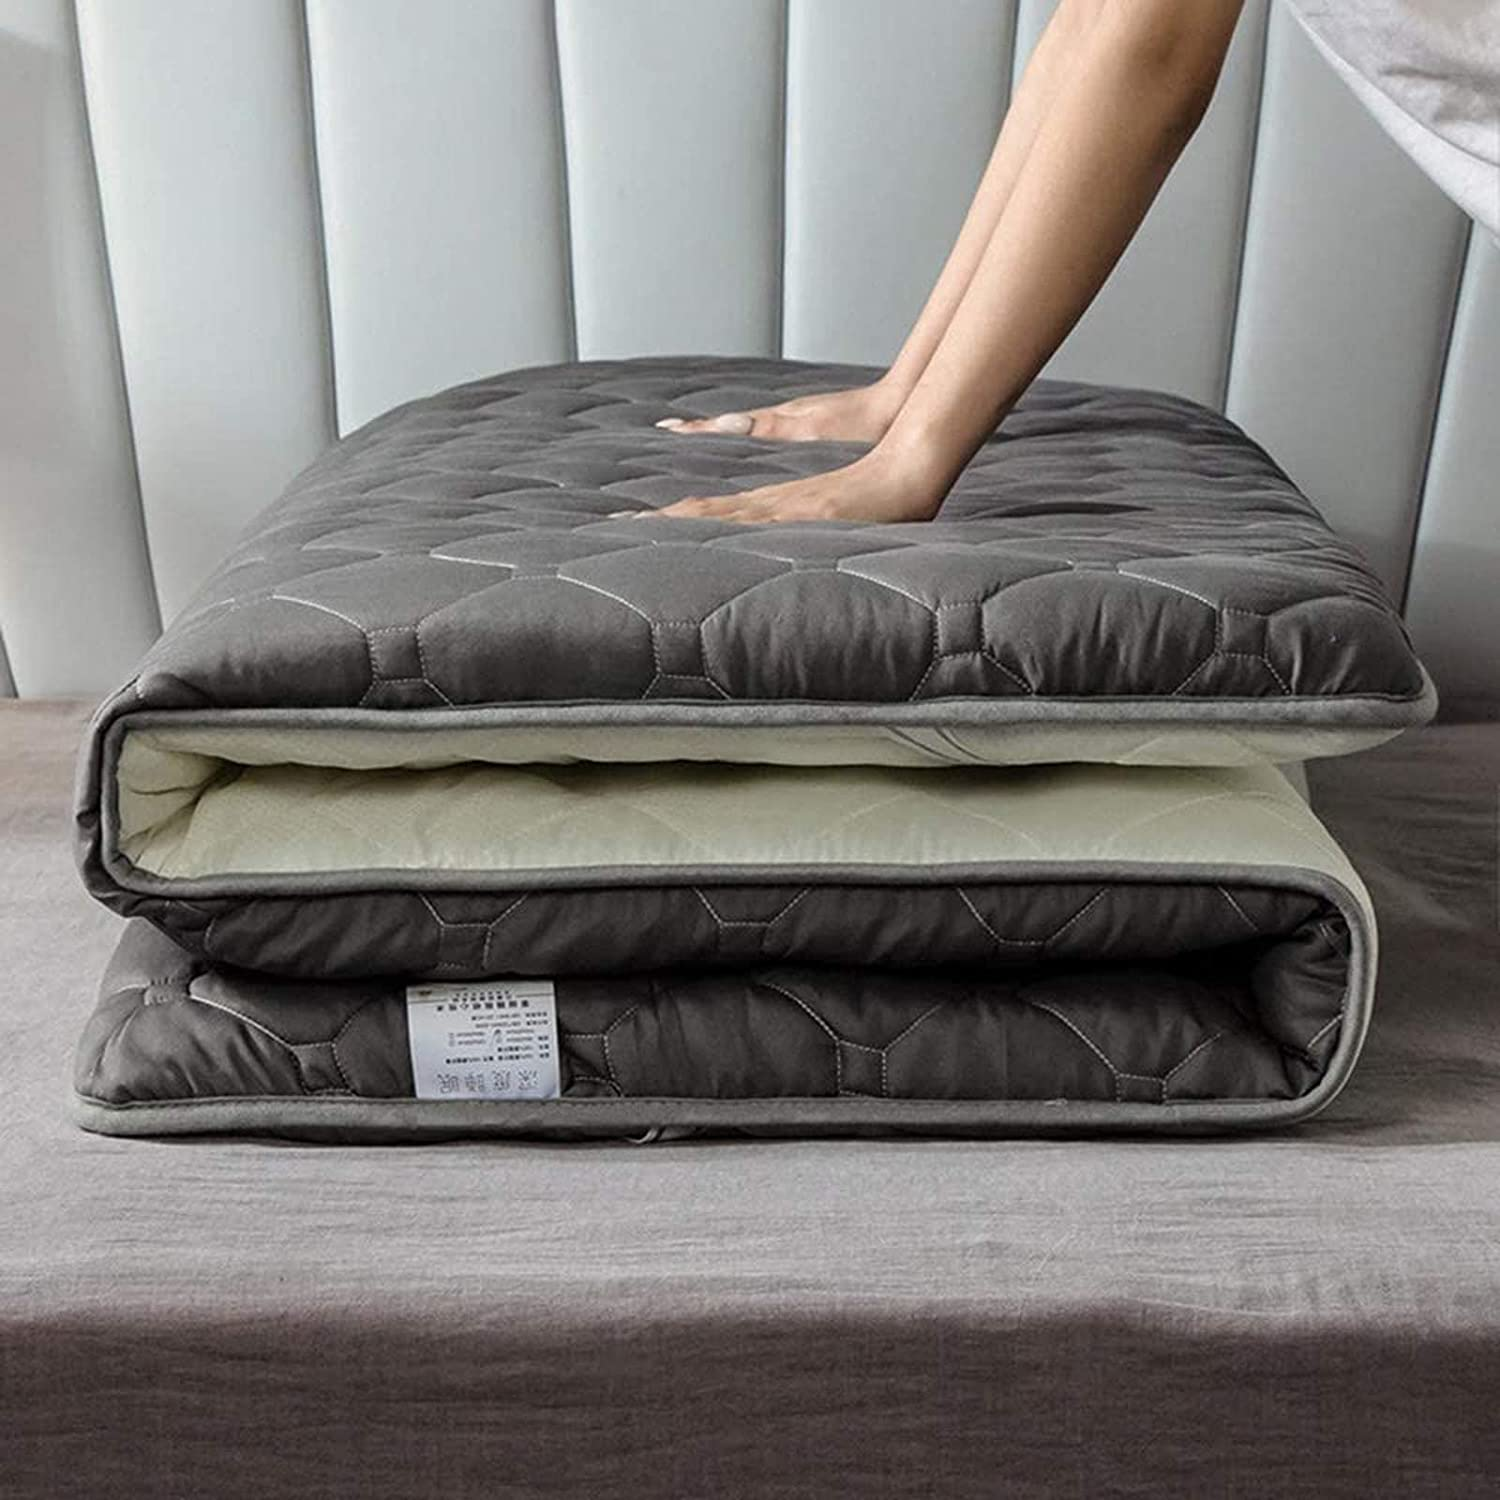 Max 71% OFF LIMIAO Soft Not-Slip Thicken 5cm Futon Complete Free Shipping Japanese Mattress Mattres